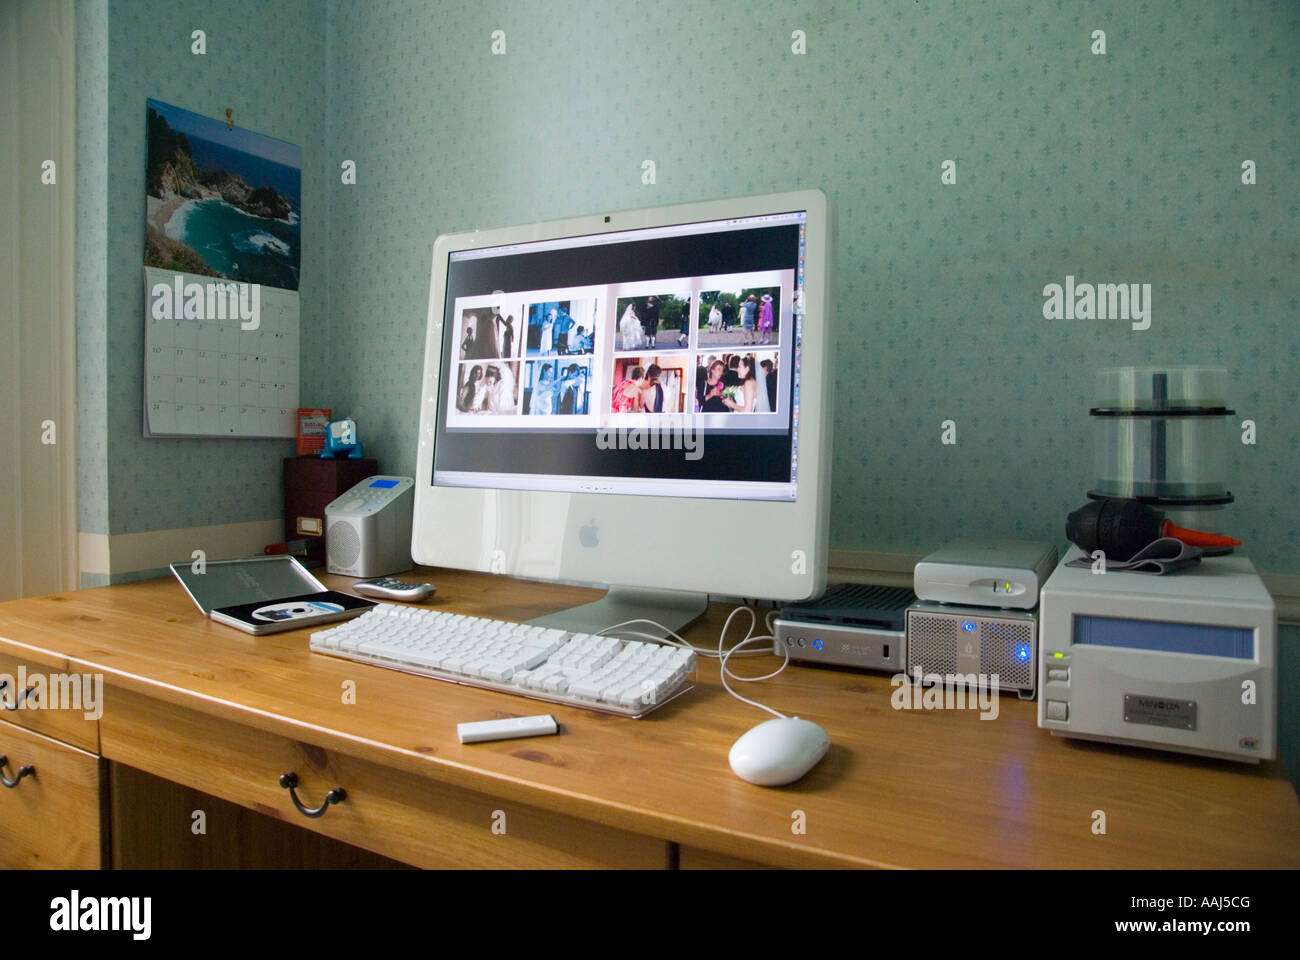 Apple IMac 24 Computer With Integral Large Screen In A Home Office  Environment May 2007